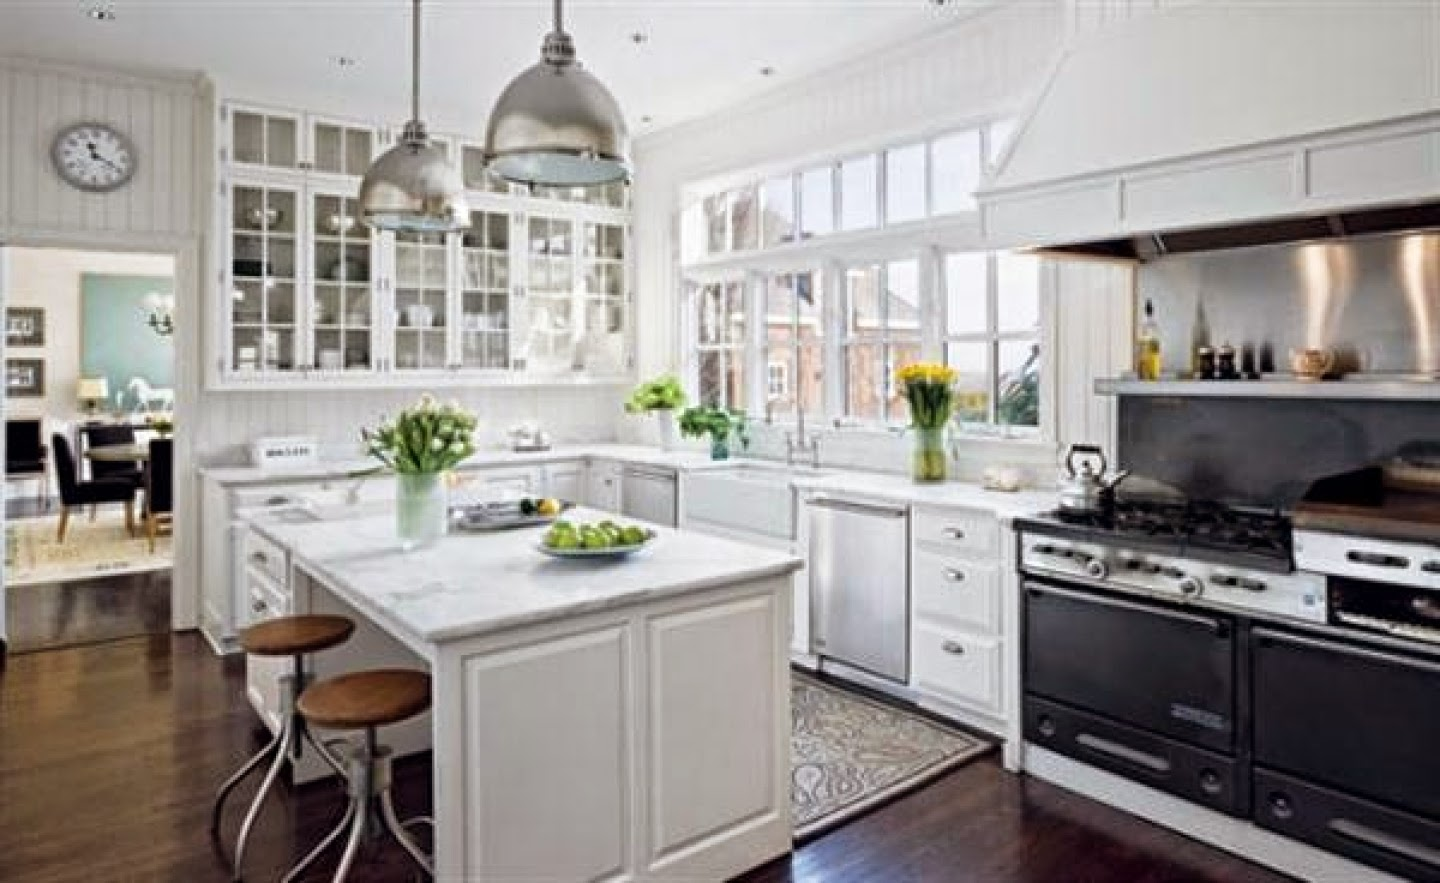 Beauftiful White Kitchens: Always in Style - South Shore Decorating Blog